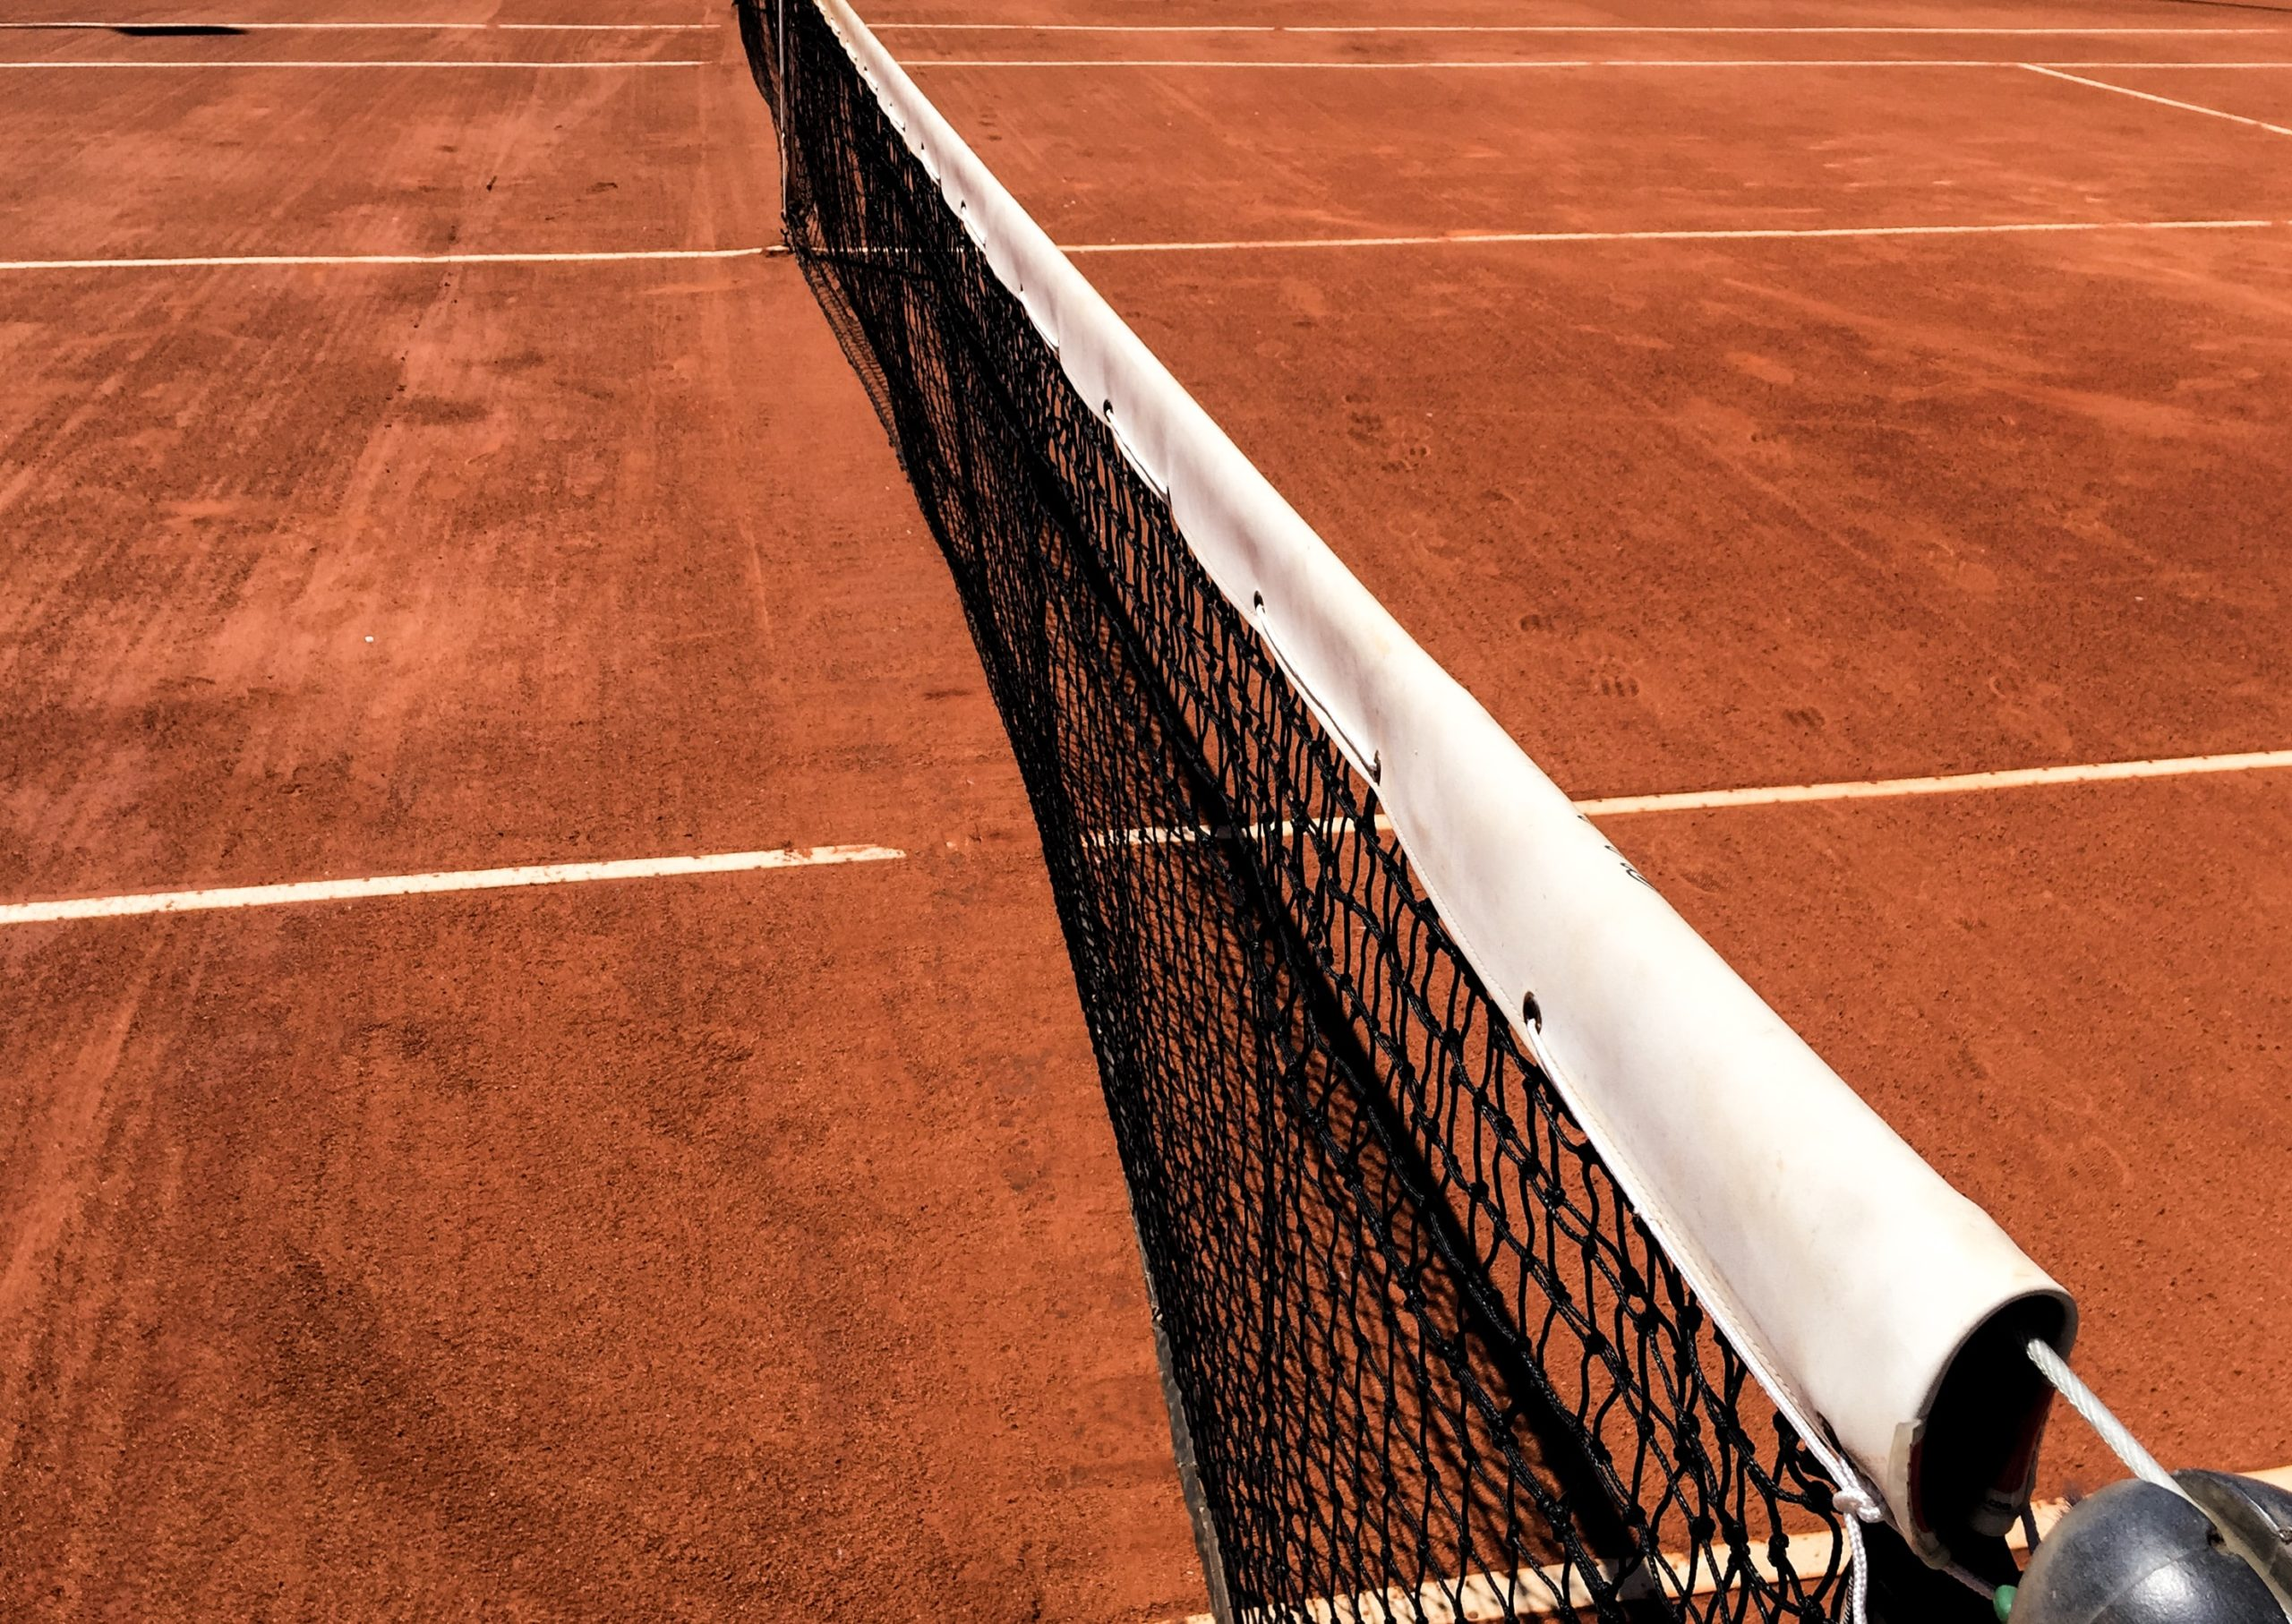 Internationaux de France -Tennis